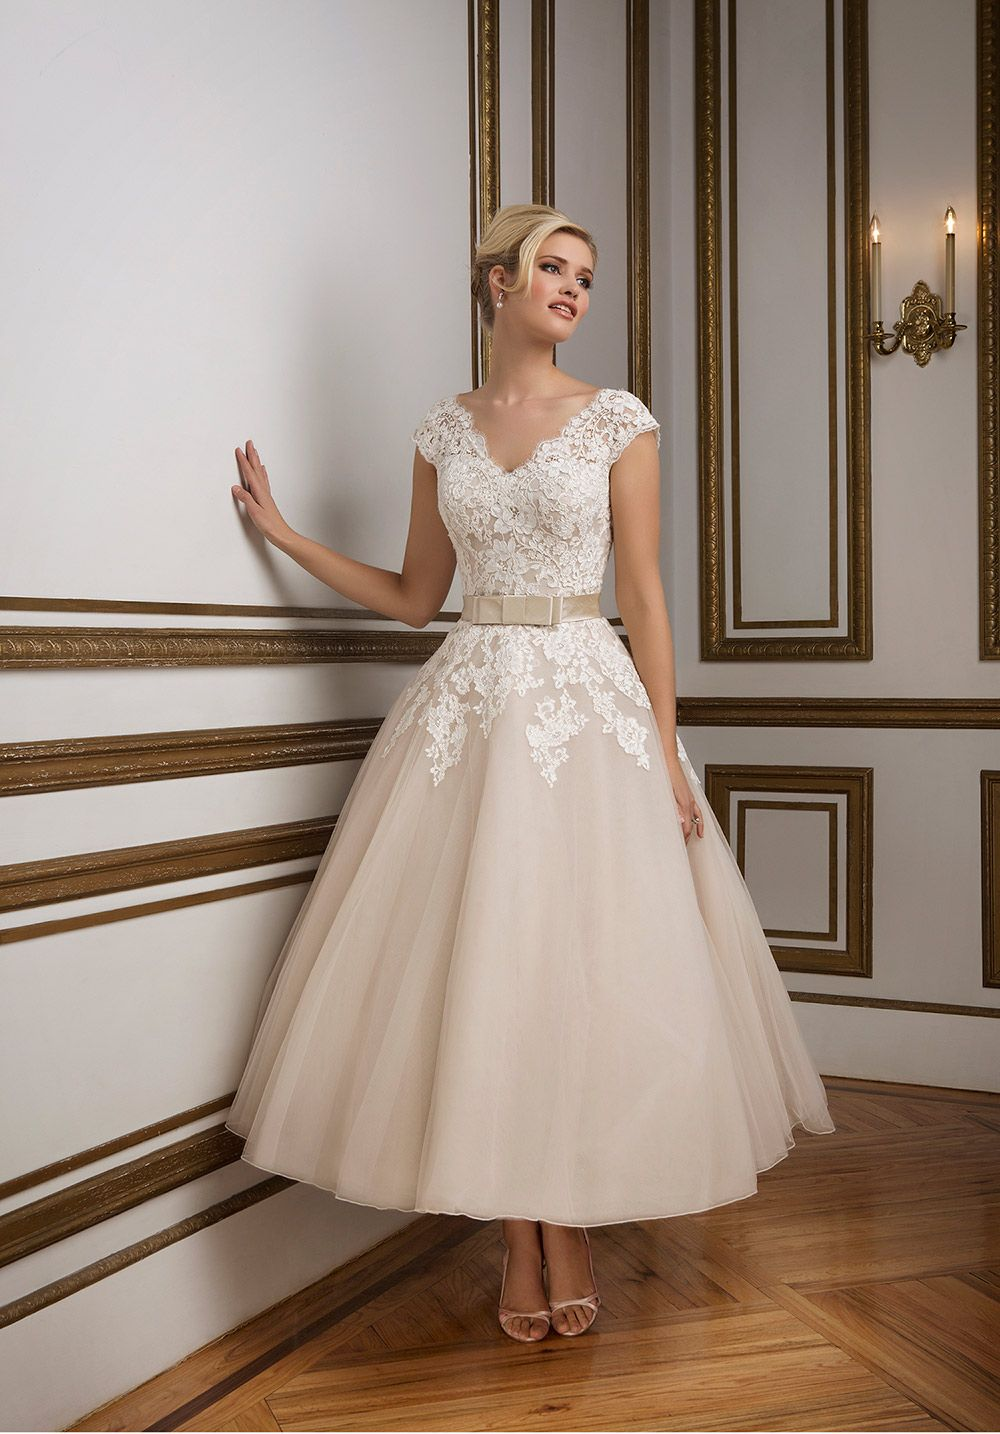 1950s wedding dresses our favourite styles inspired by for Wedding dress pick up style